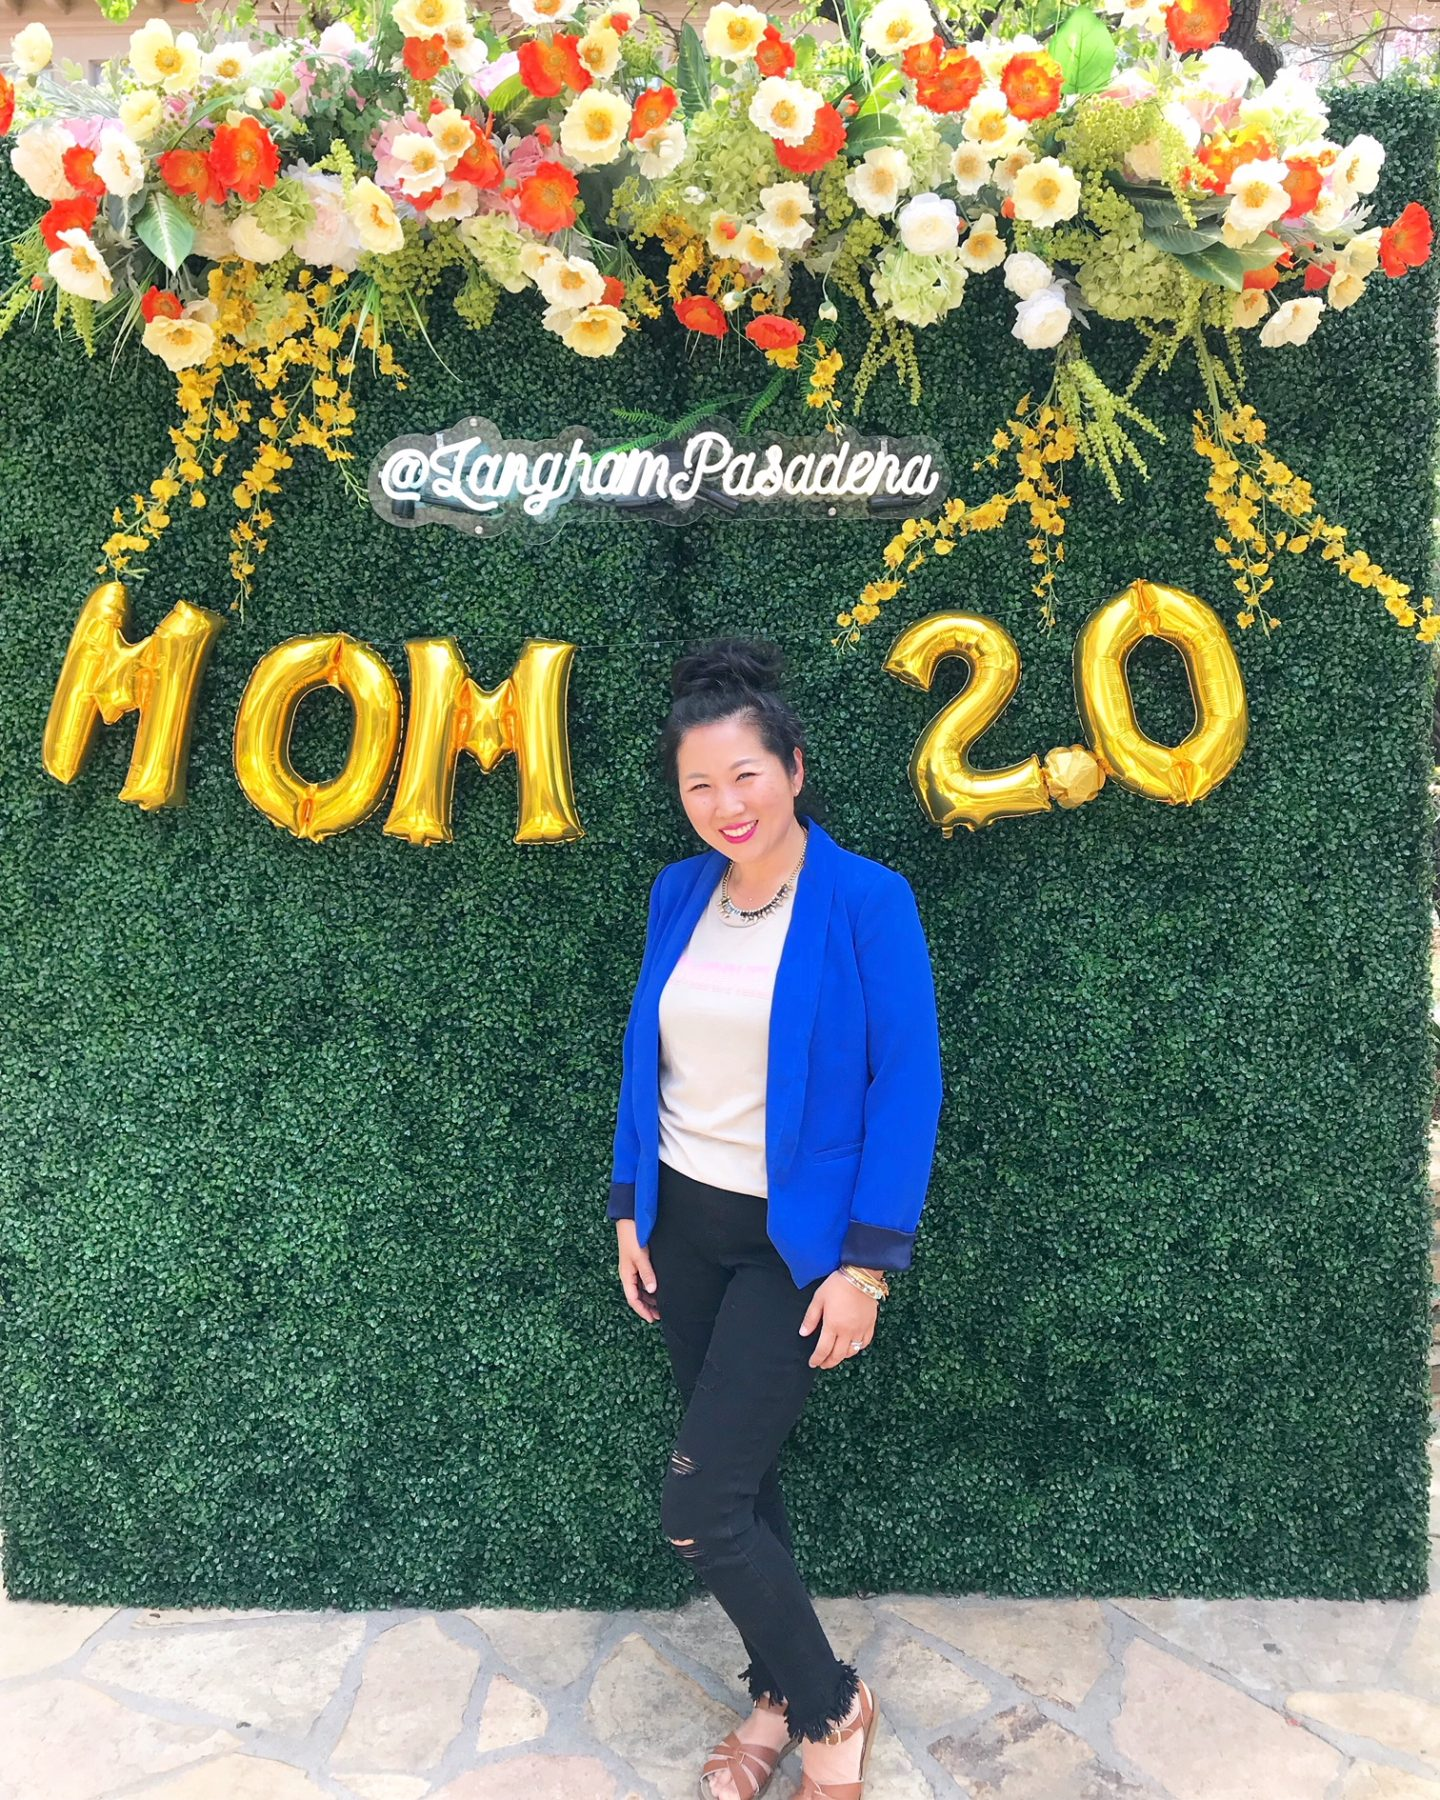 5 Things I Learned at Mom 2.0 Summit 2018